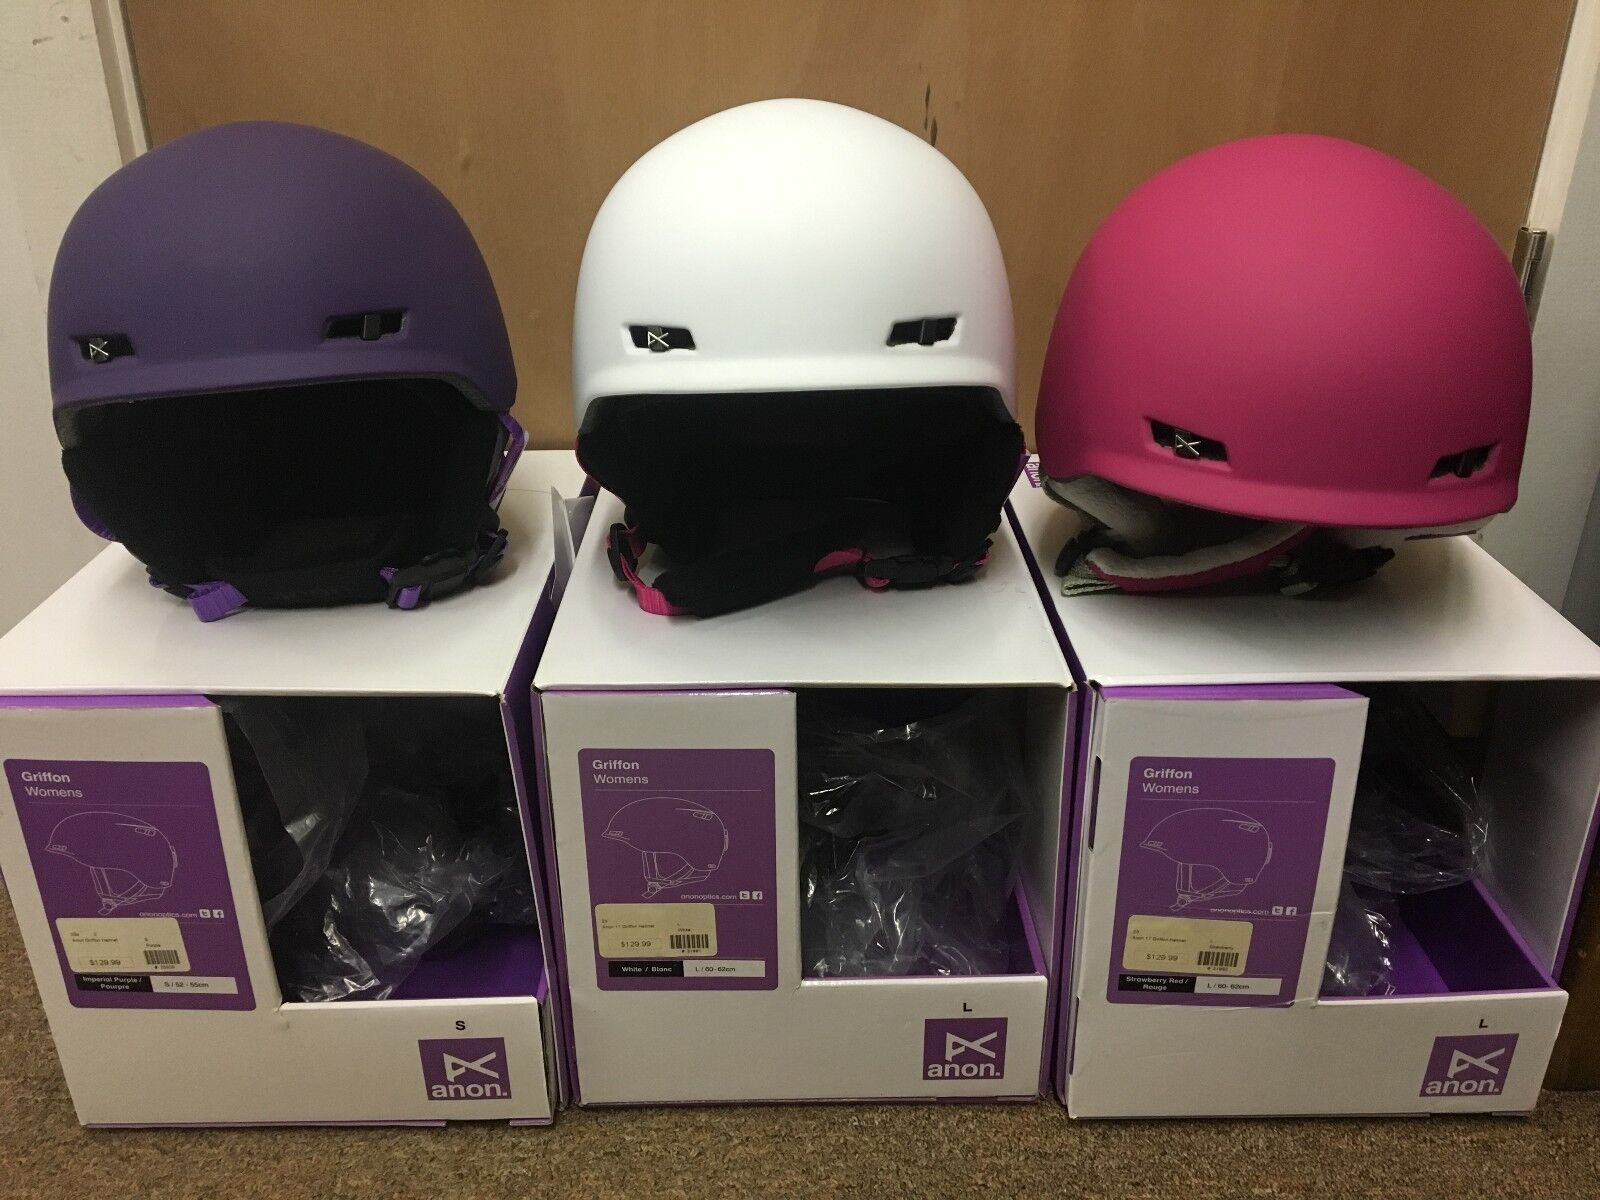 NIB Burton Anon Griffon  Women's Helmets - Multiple Sizes and colors SALE   64.99  up to 65% off